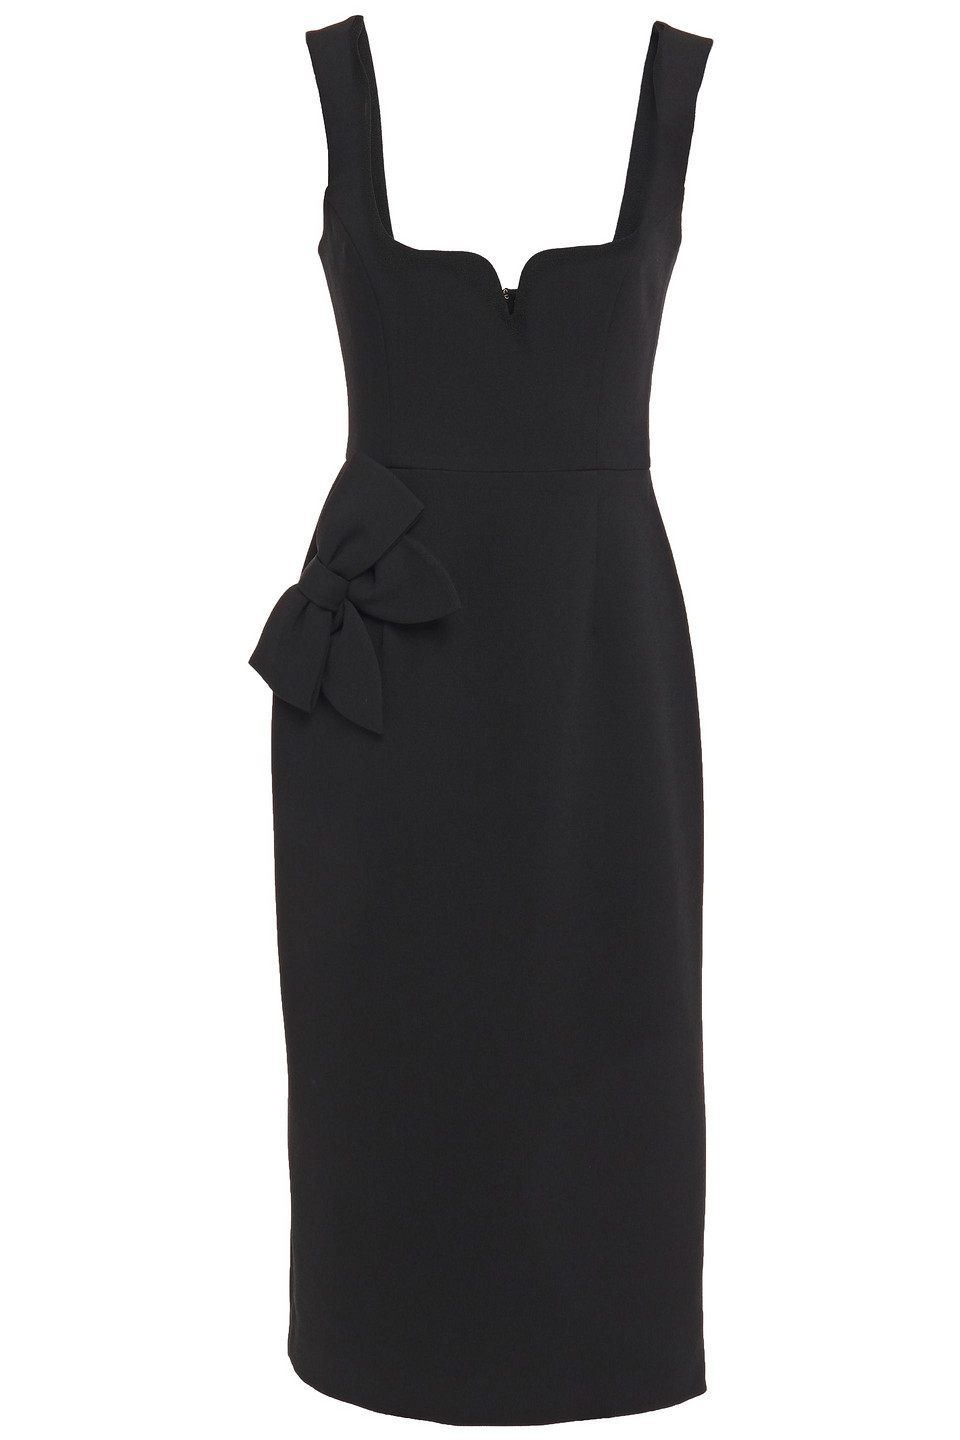 Rebecca Vallance | Rebecca Vallance Woman Bow-embellished Crepe Midi Dress Black | Clouty